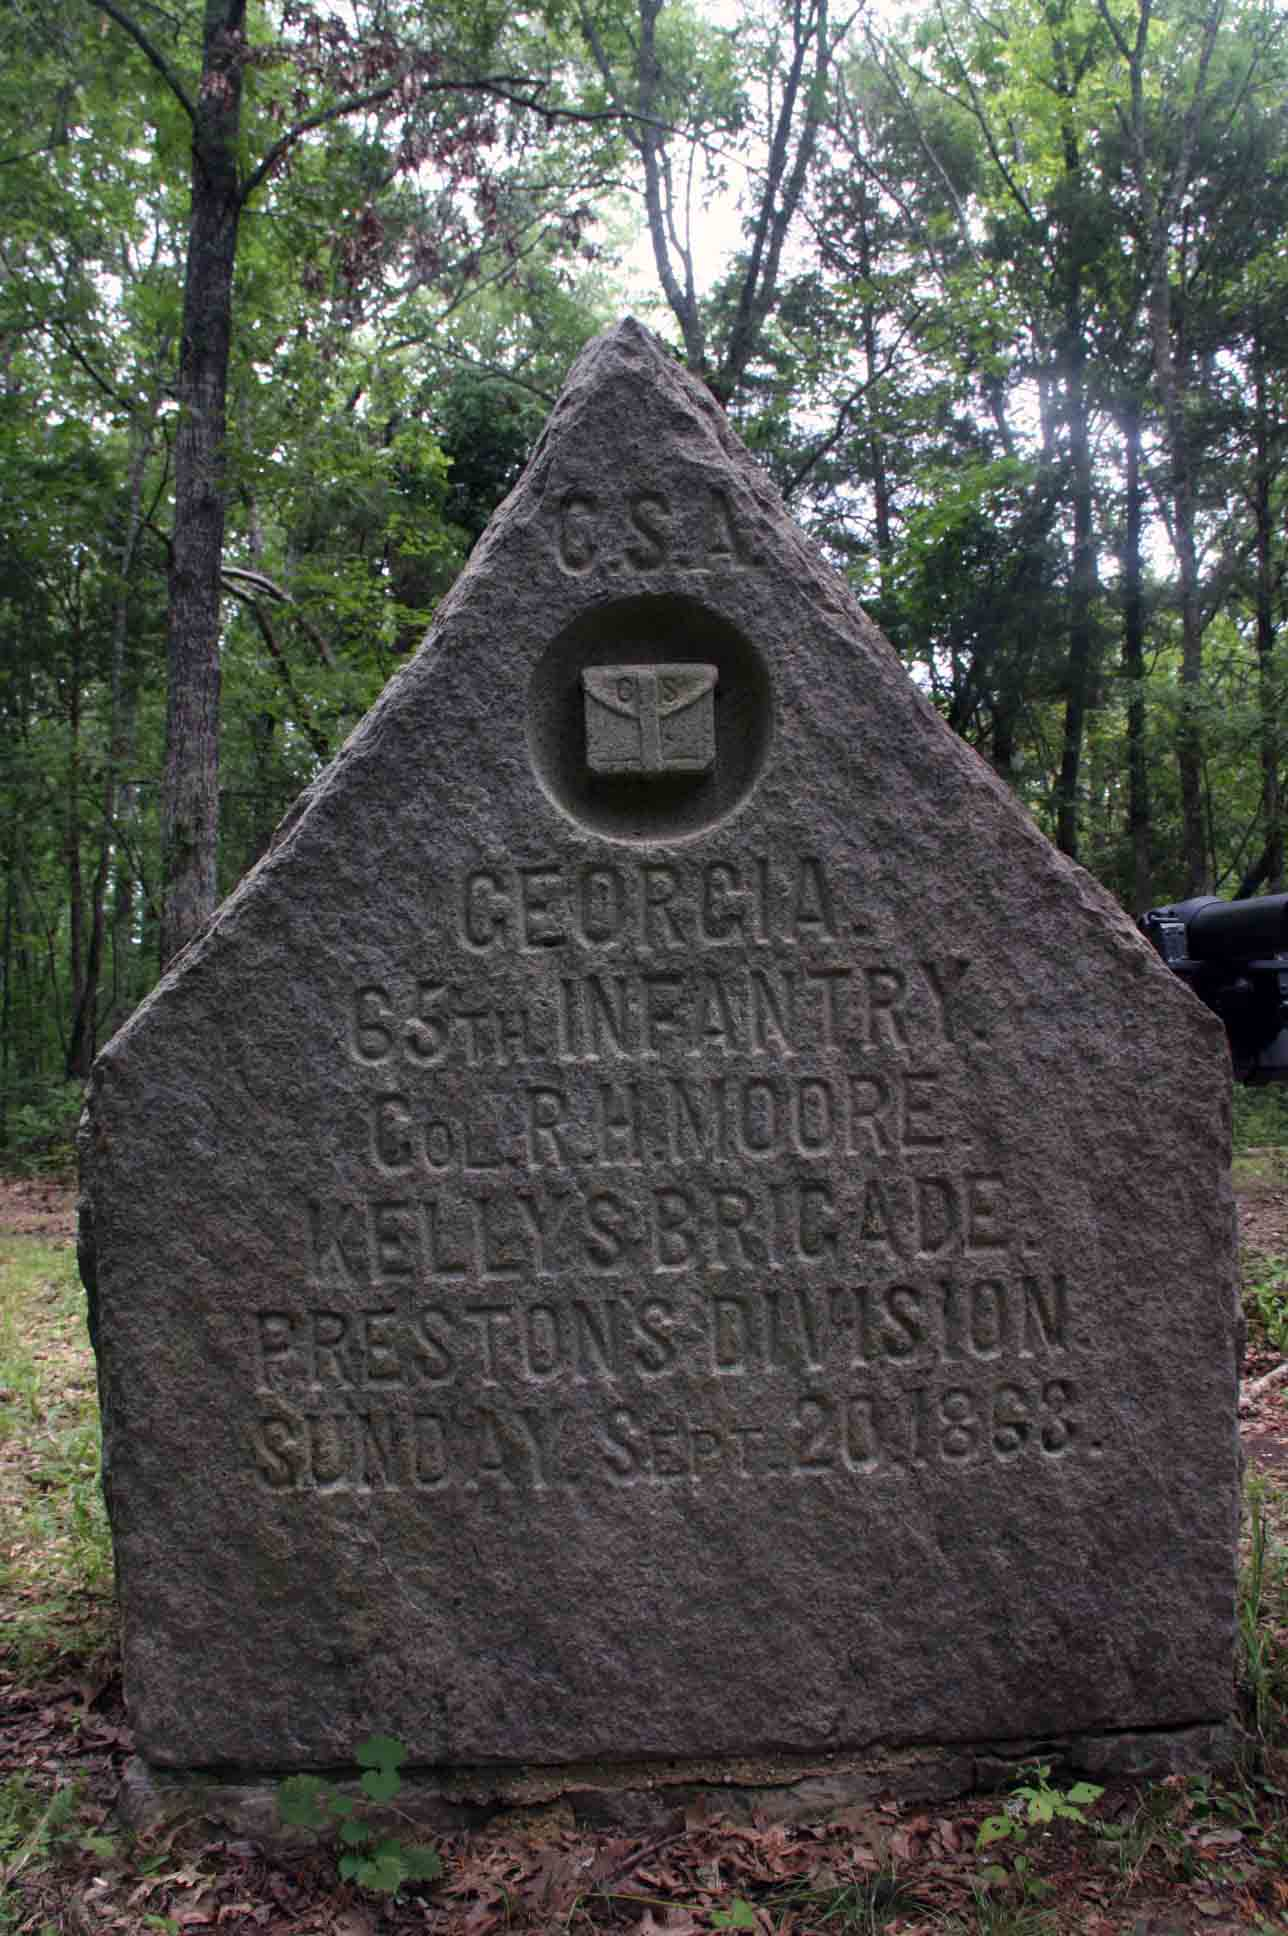 65th Georgia Infantry Marker, click photo to enlarge.